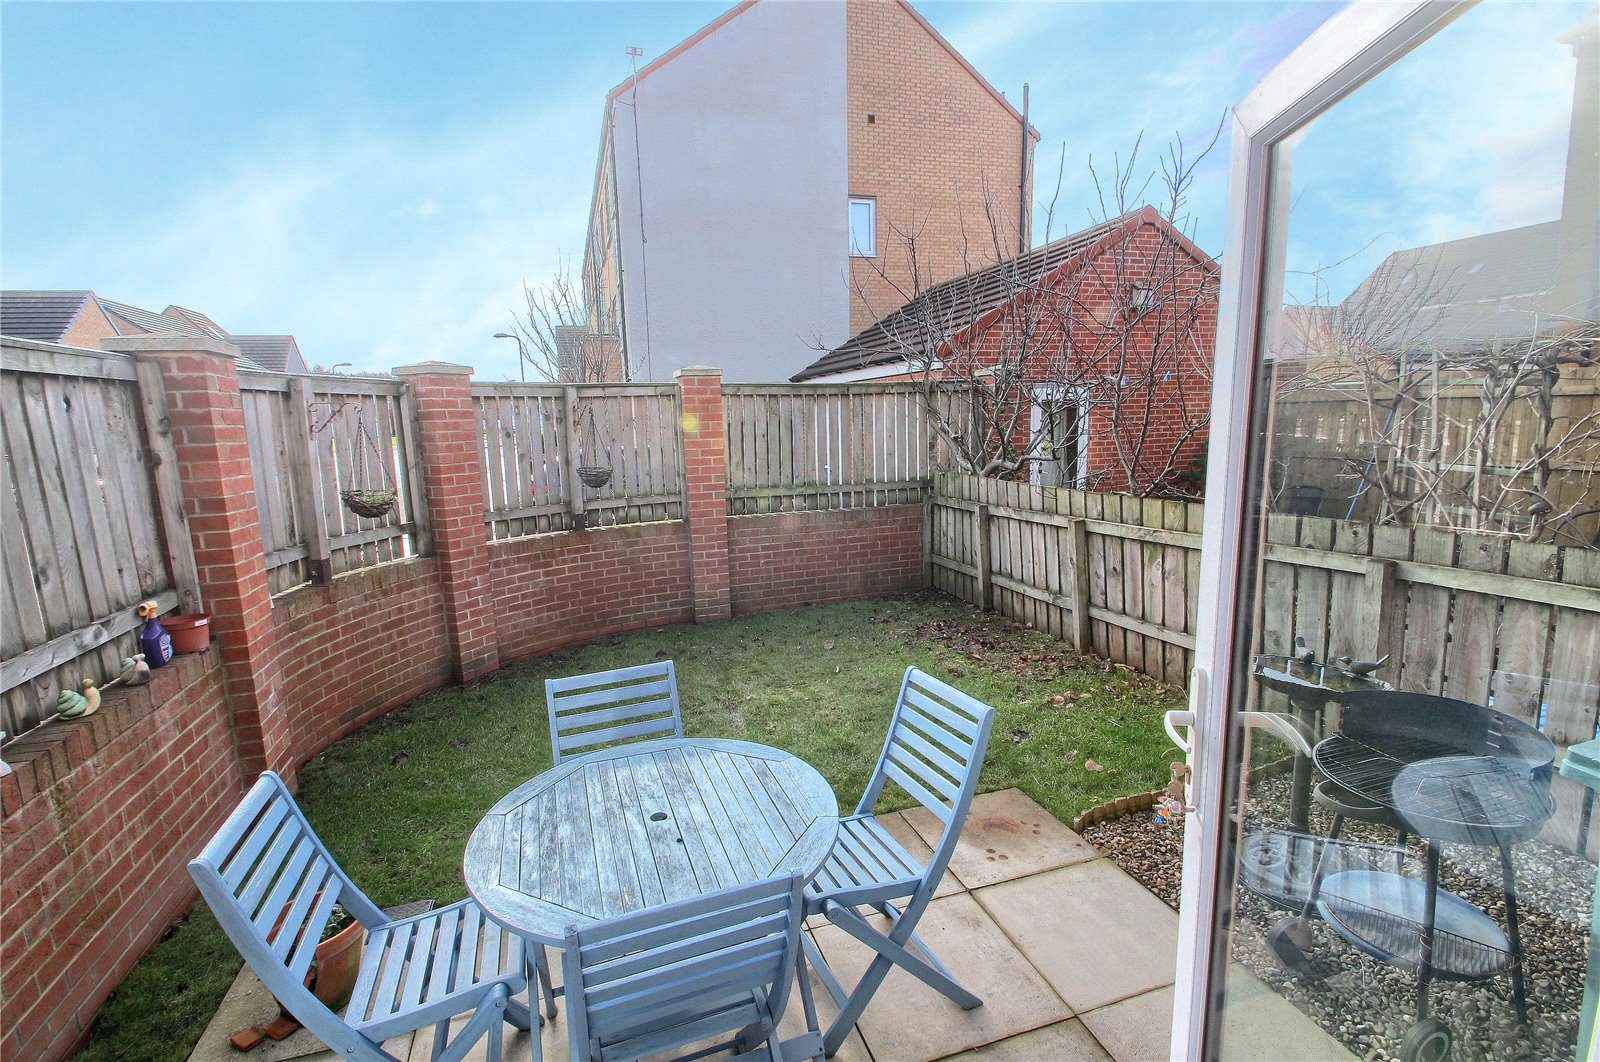 4 bed house for sale in Crimdon Beck Close, Whitewater Glade  - Property Image 11